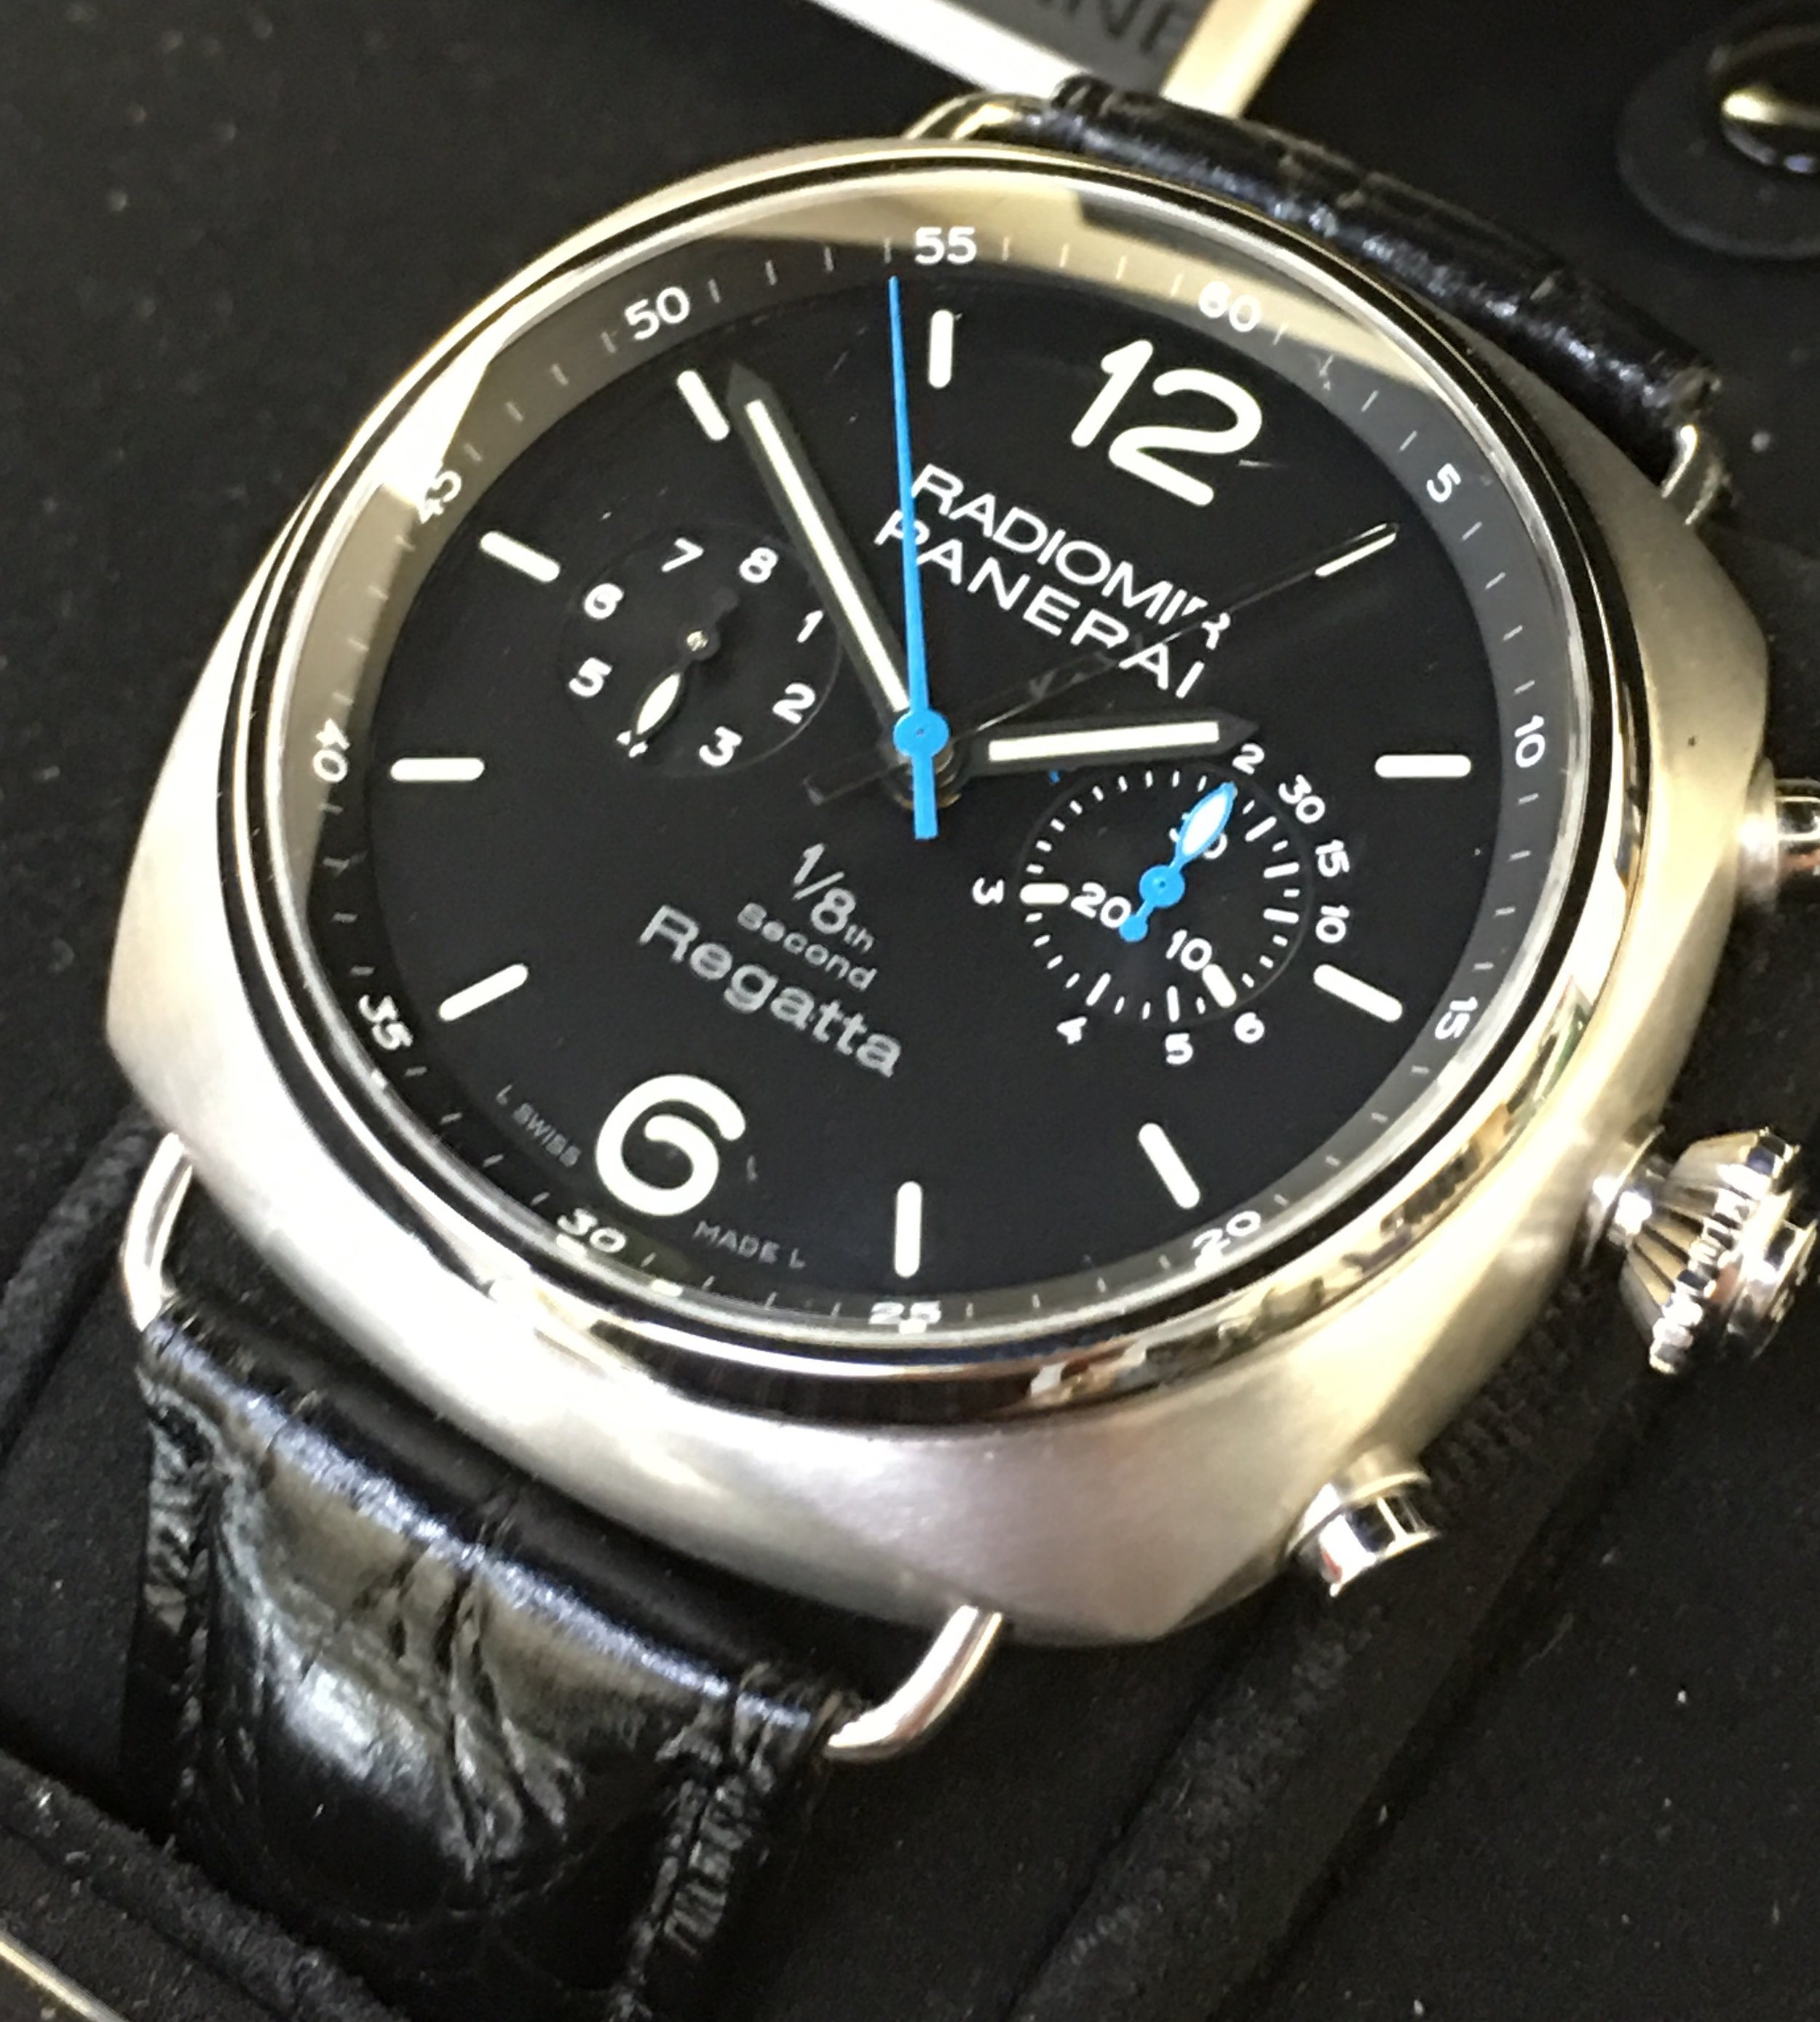 Watch Radiomir Regatta Panerai 1/8 th Second  . Tampa Jewelry Store Watch Repair.